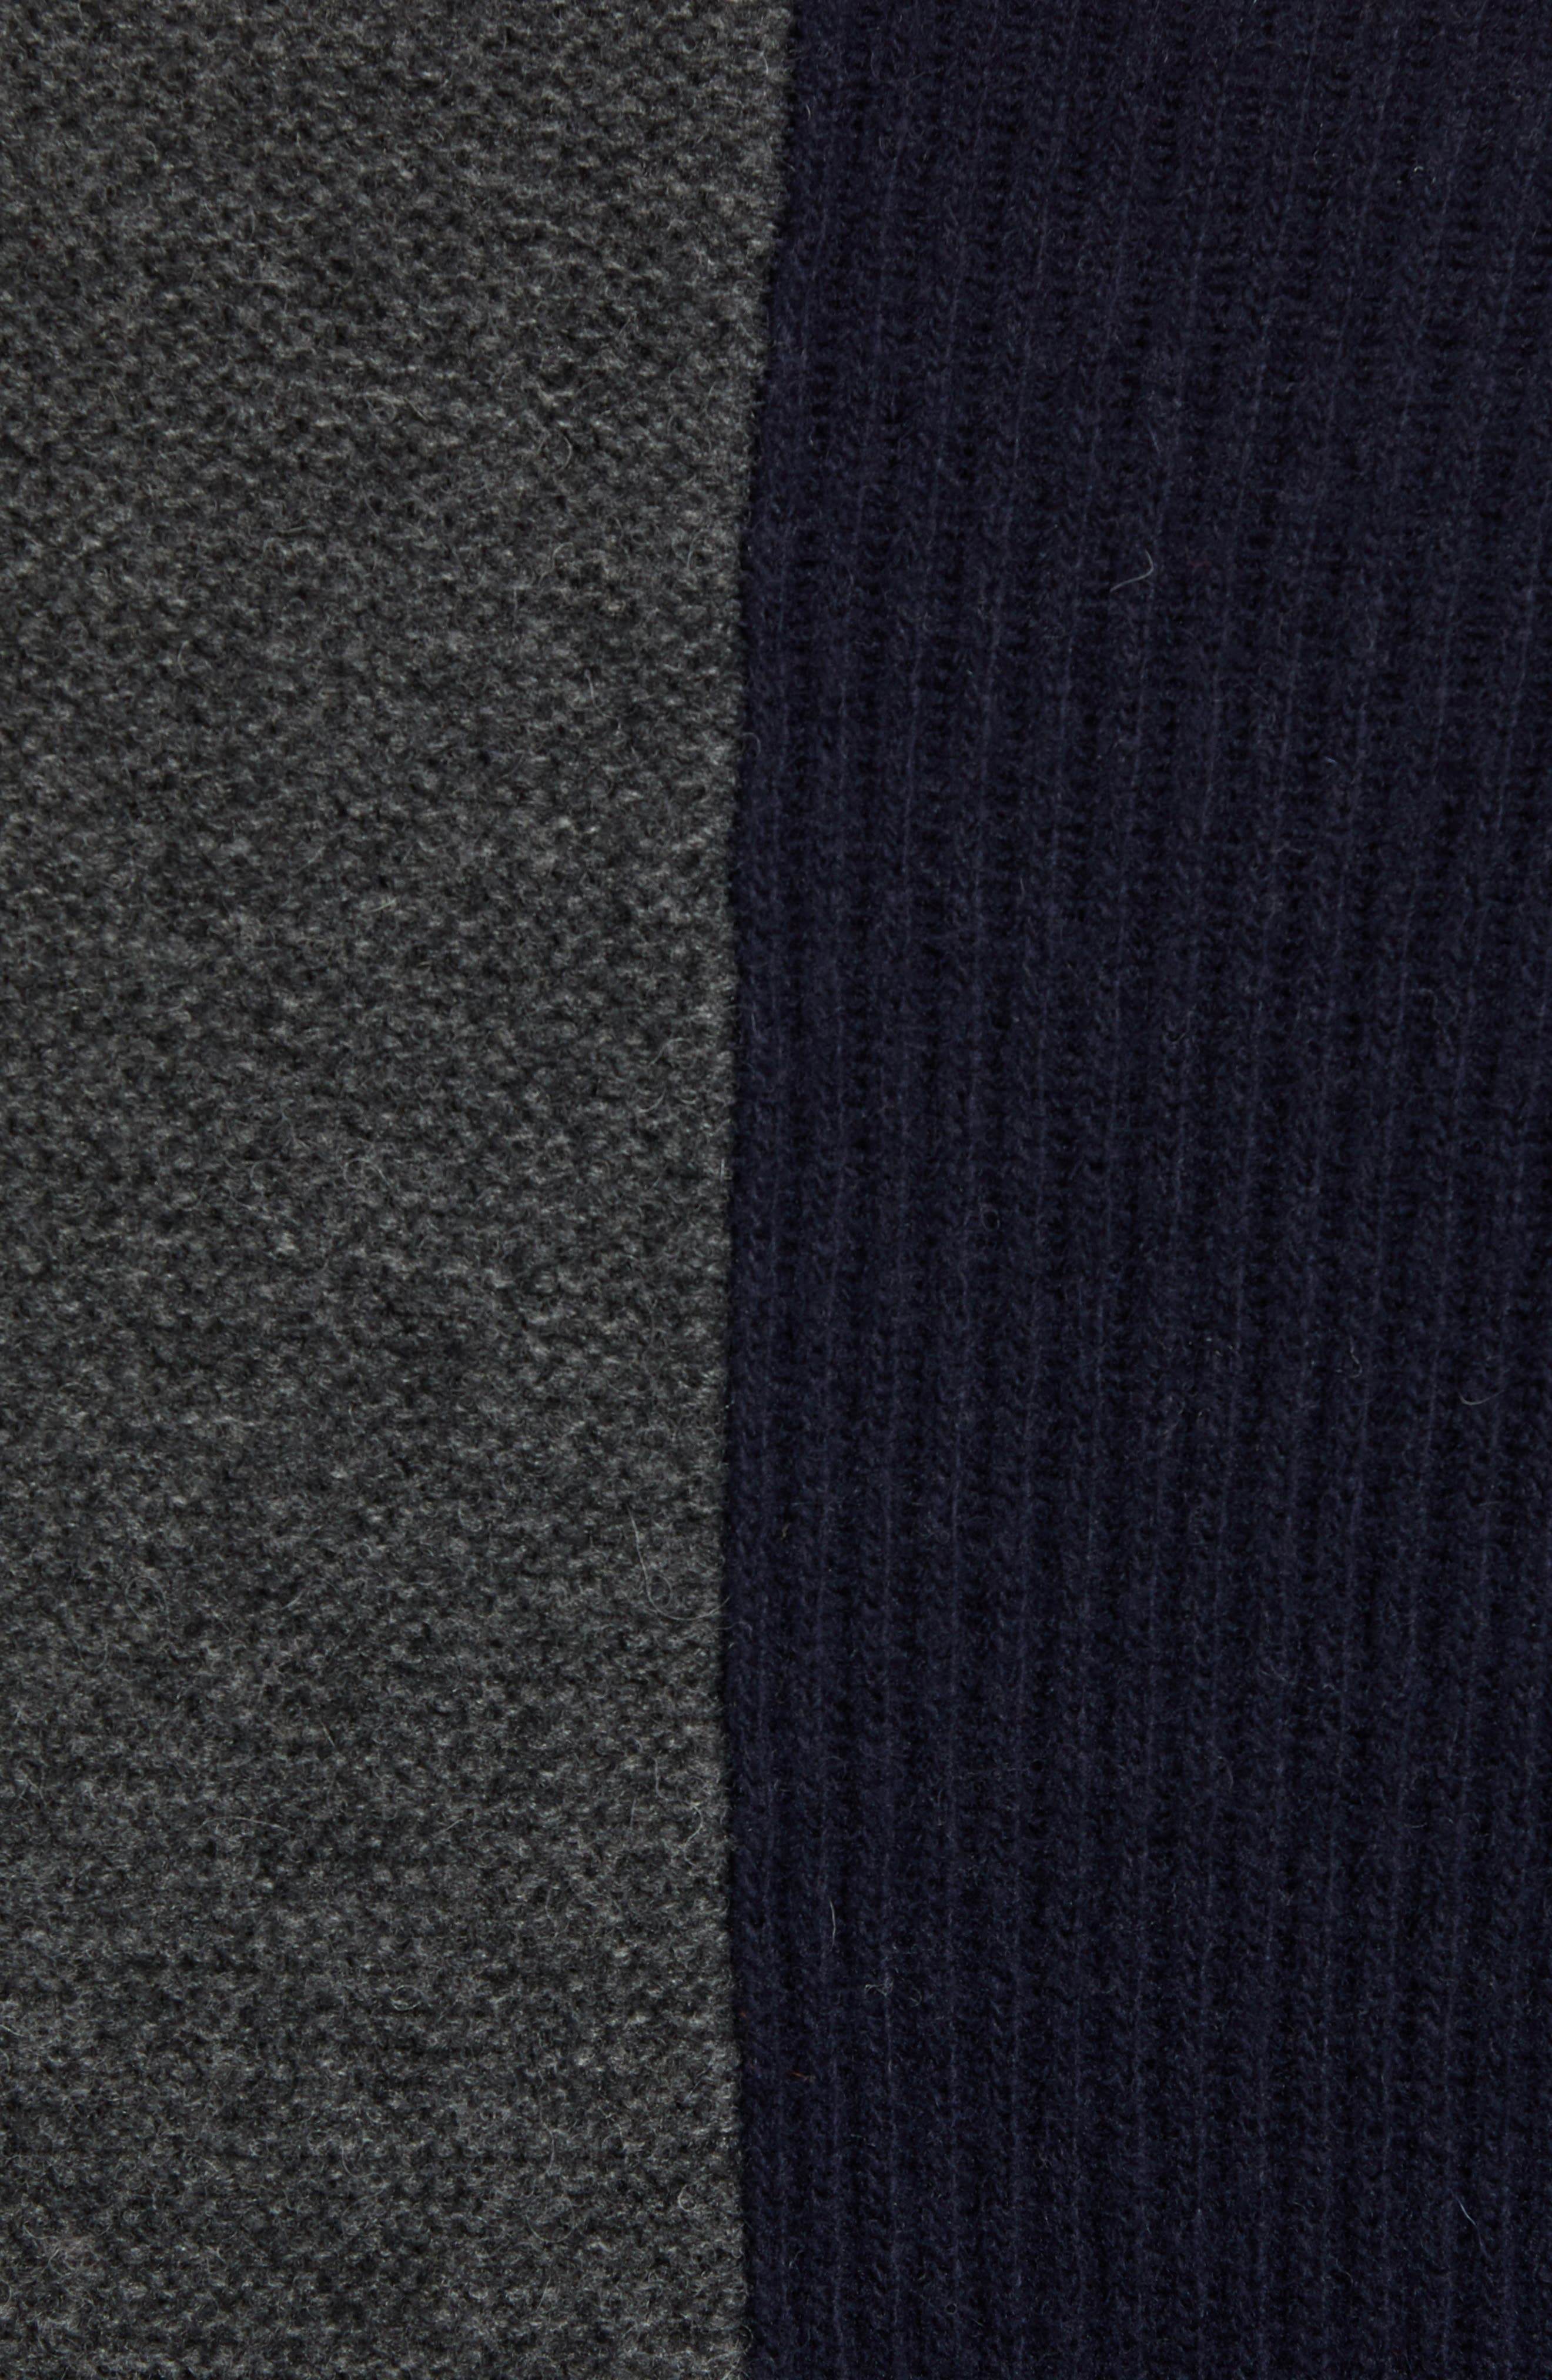 Mixed Texture Wool Blend Sweater,                             Alternate thumbnail 5, color,                             UTILITY BLUE CHARCOAL MELANGE